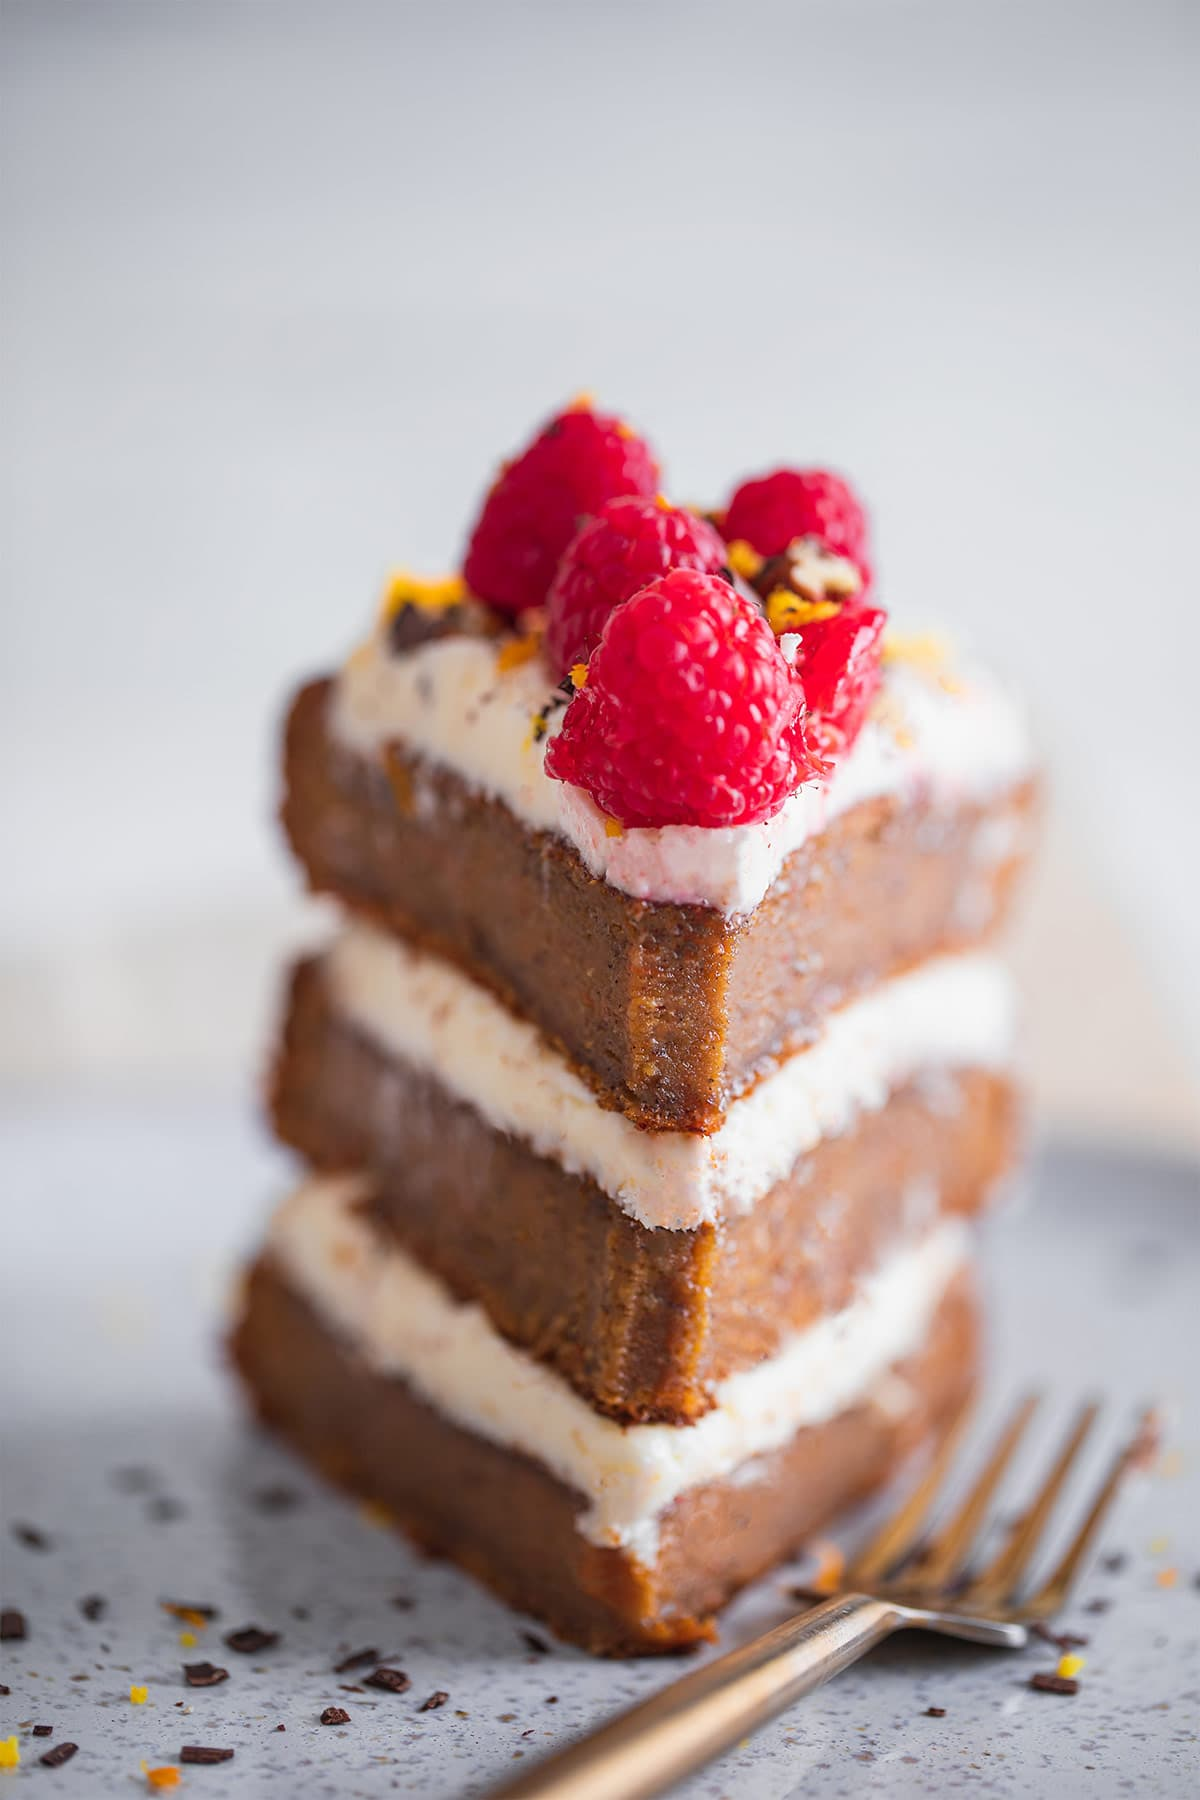 Slice of dairy-free gluten-free carrot cake with raspberries on a plate